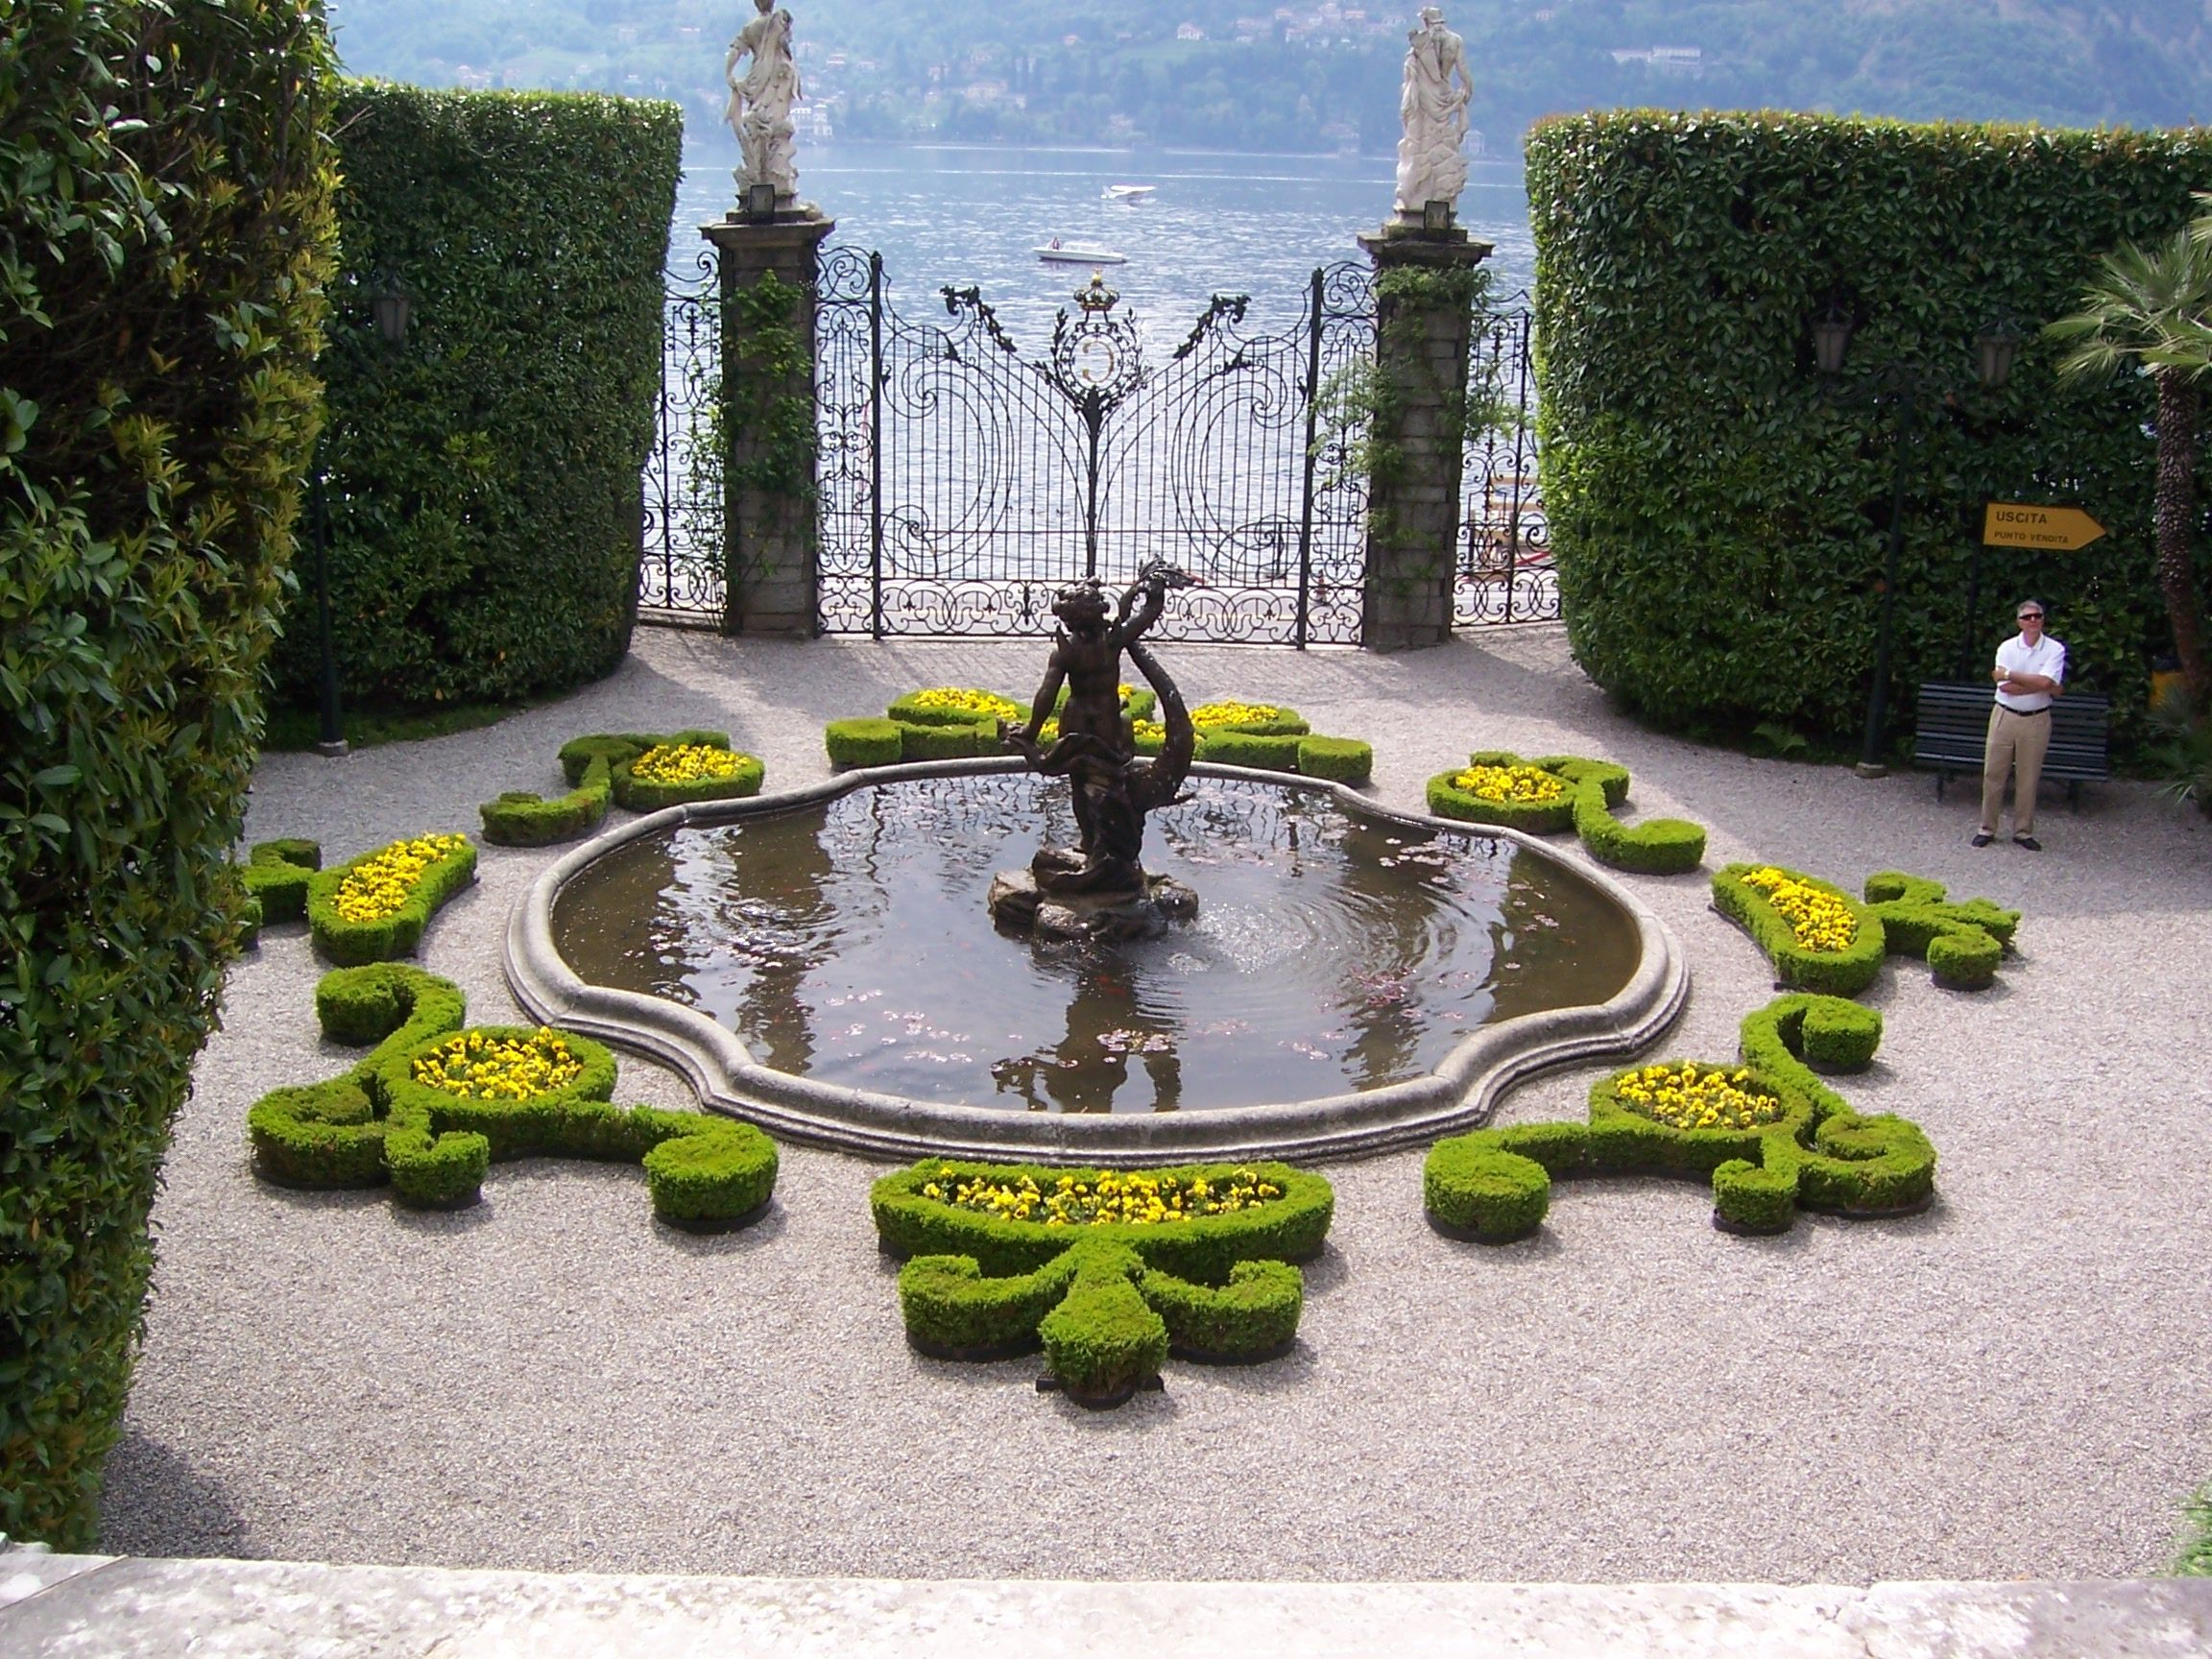 Villa Carlotta entry court fountain, May 2005, Museum